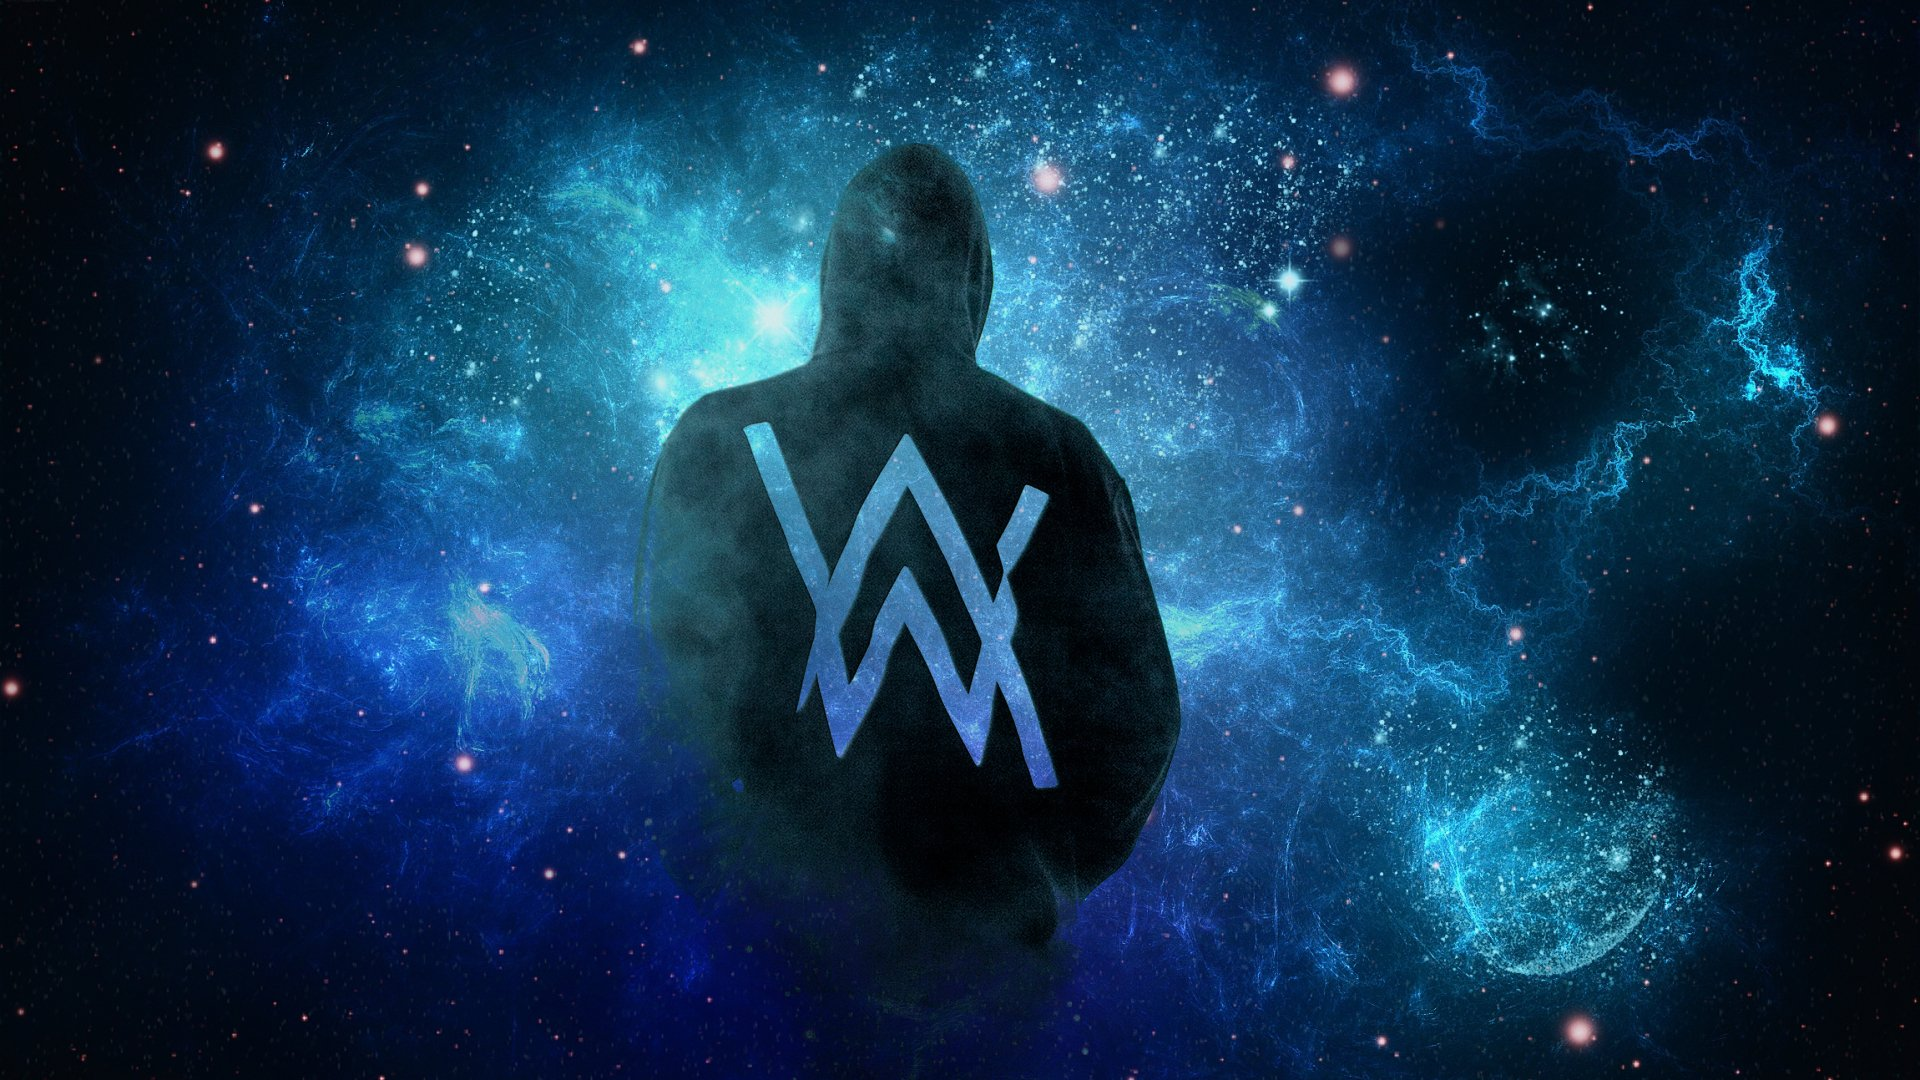 Music - Alan Walker  DJ Music Wallpaper